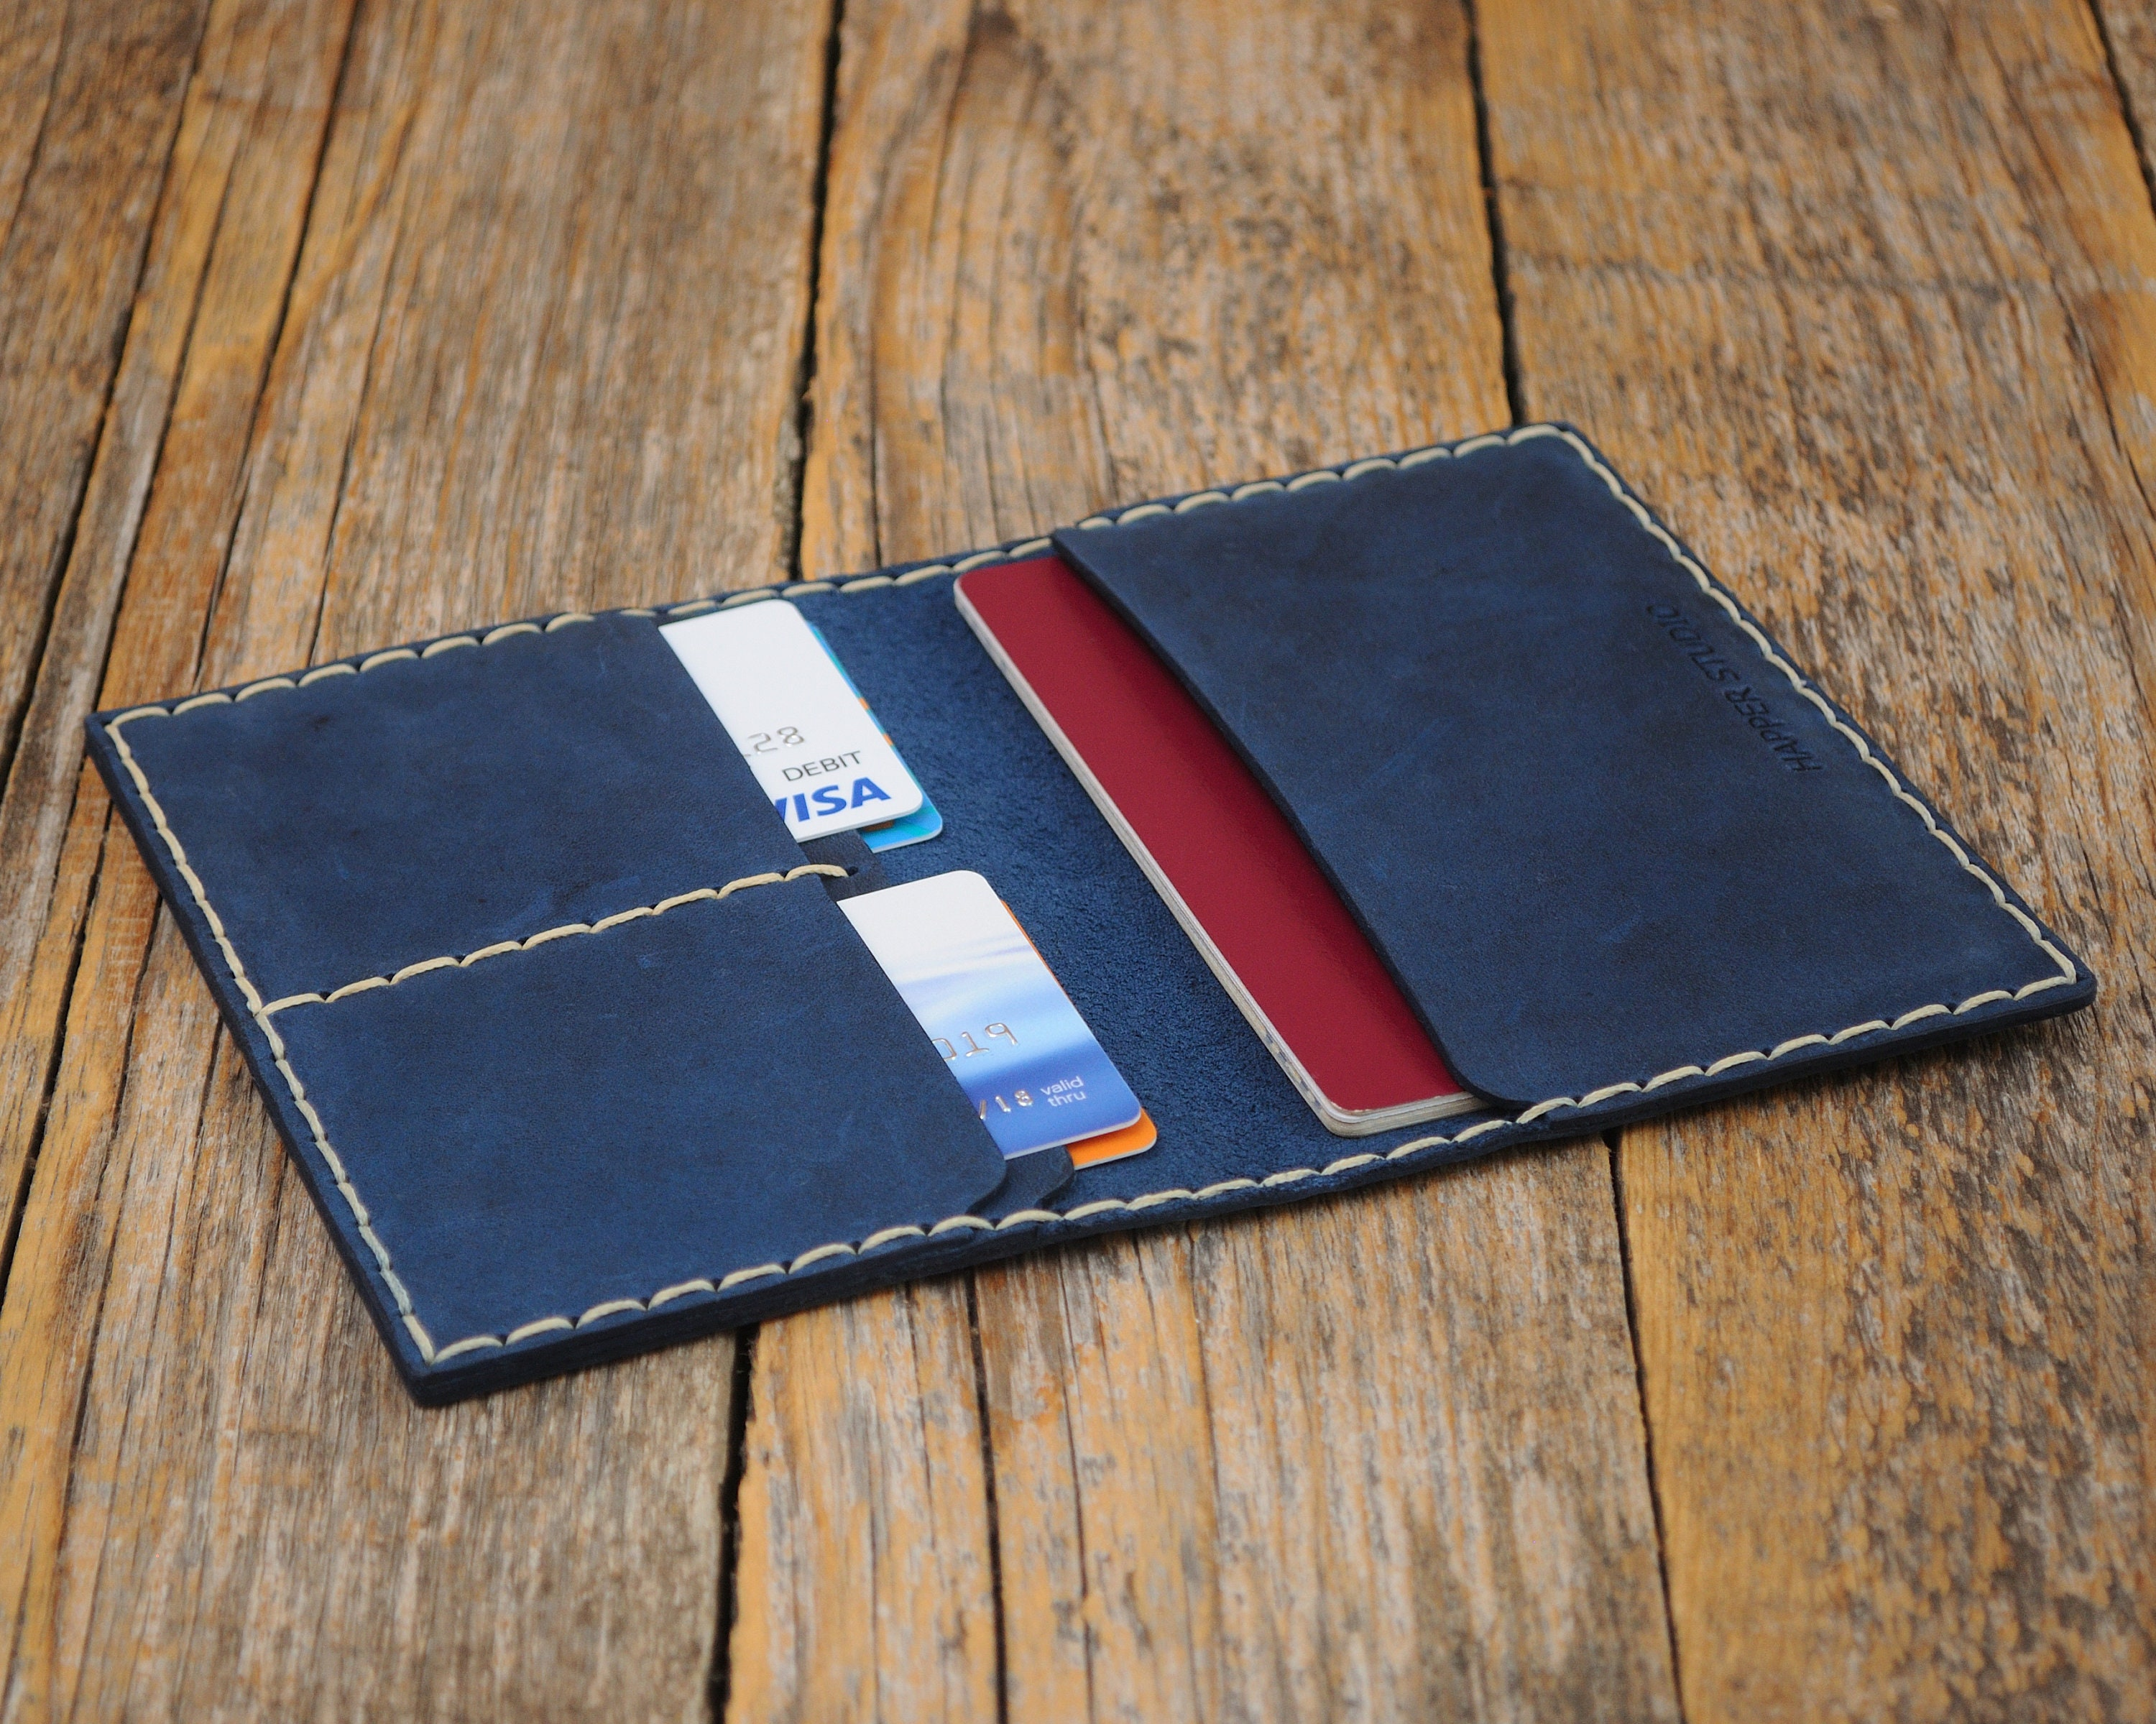 e6111840a6b7 Blue Genuine Leather Passport Cover, Cards Holder with Secure ...